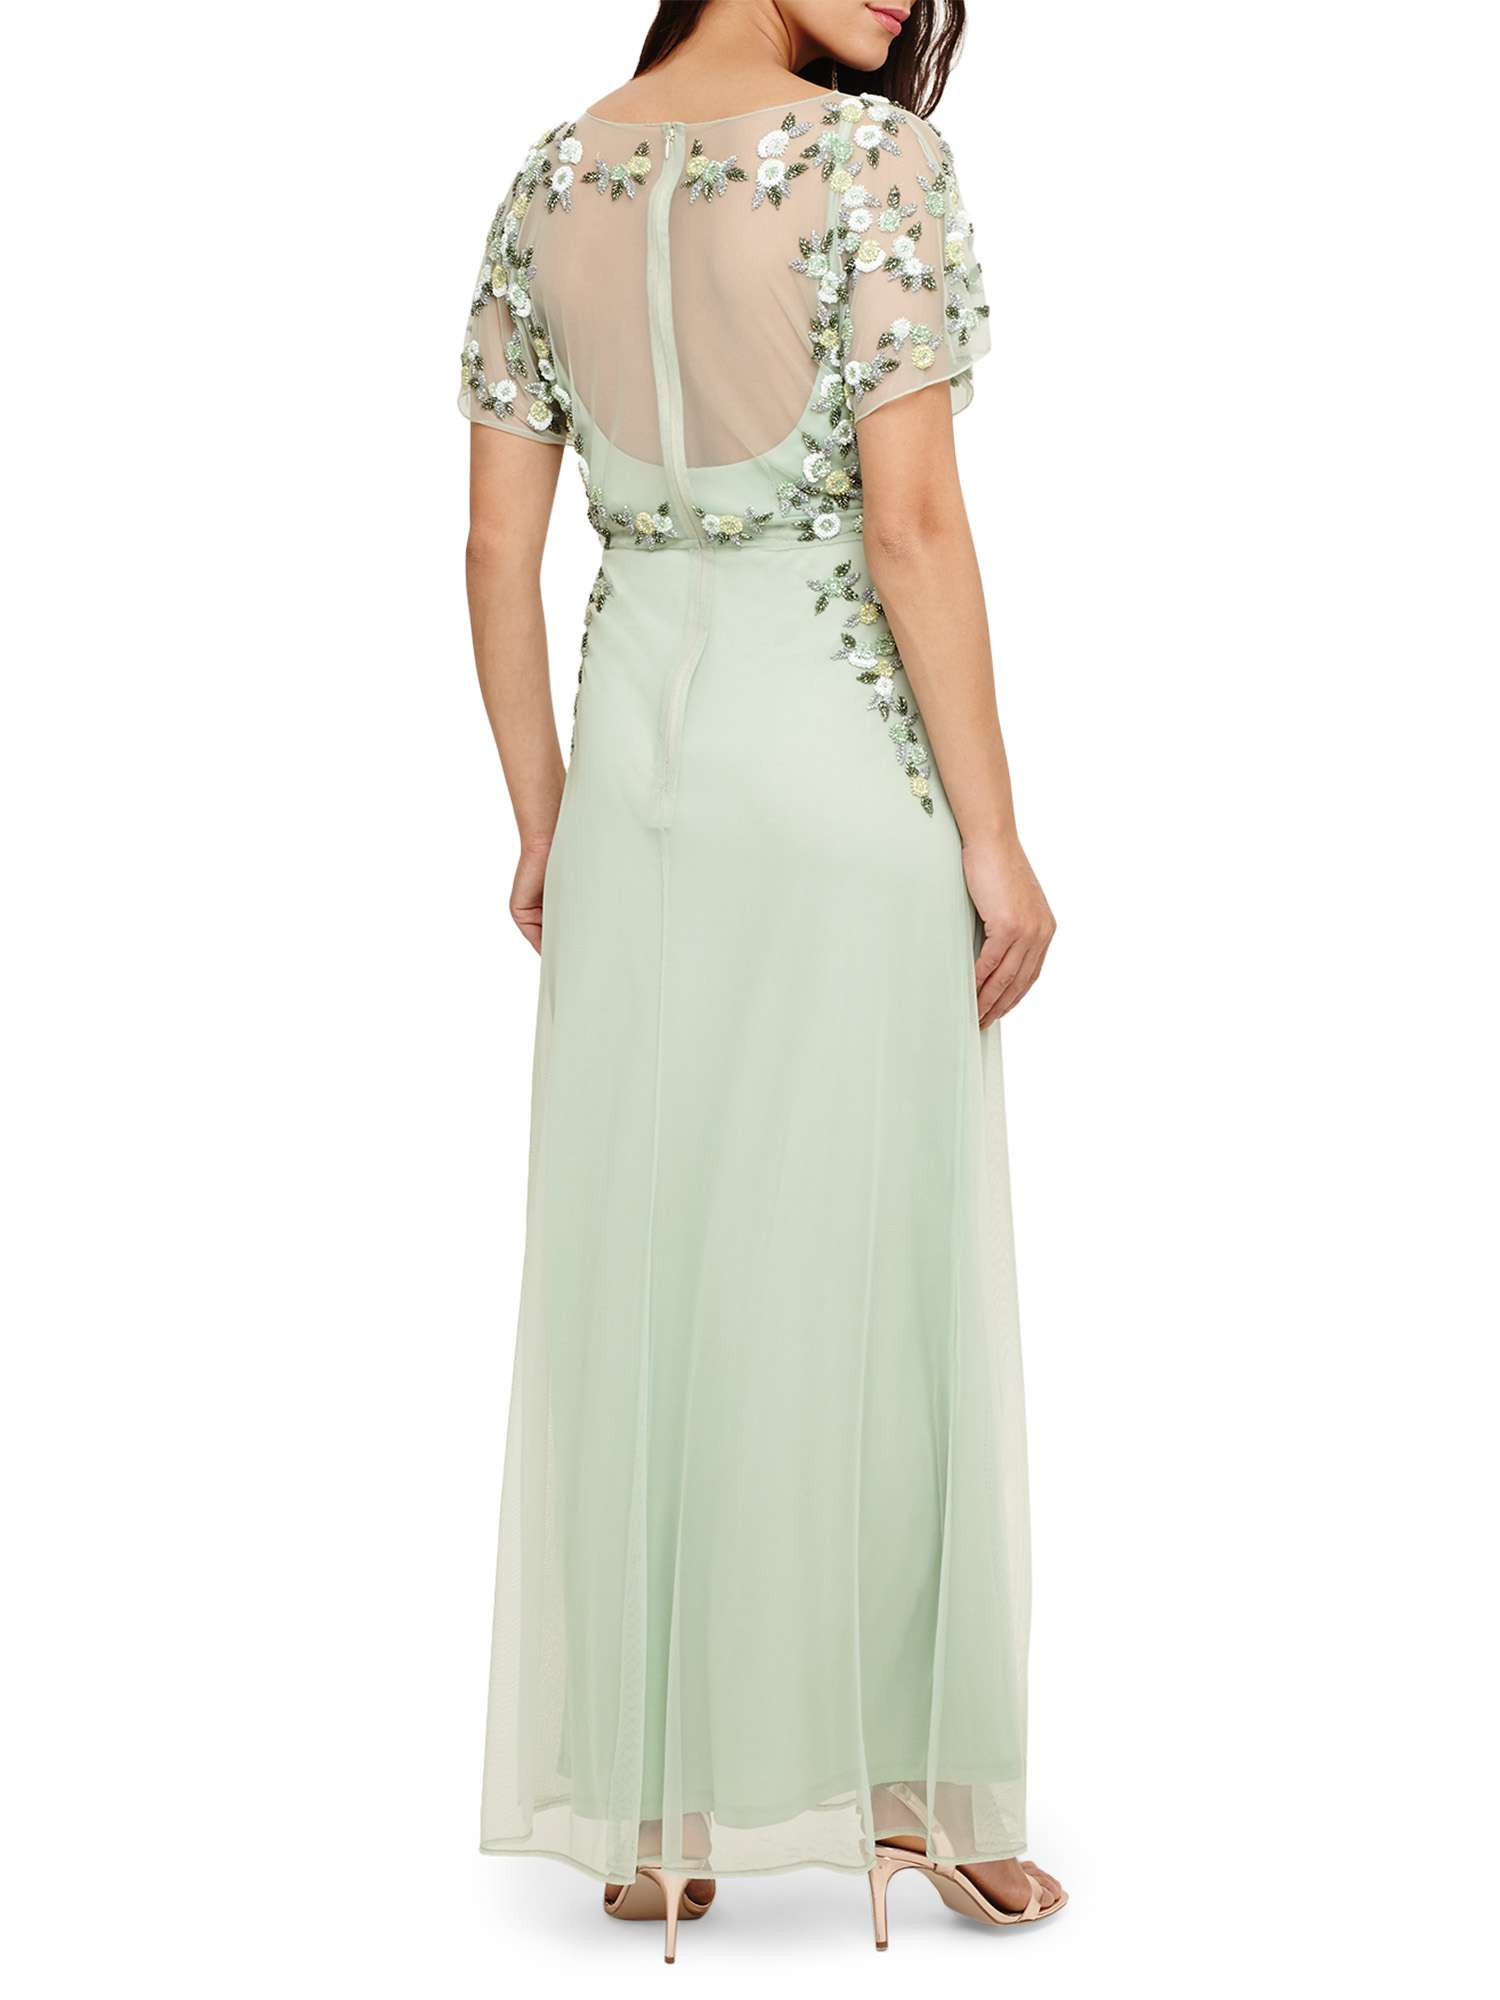 Embellished Carla Phase Dress Phase Eight Eight gxYqYCfwn1